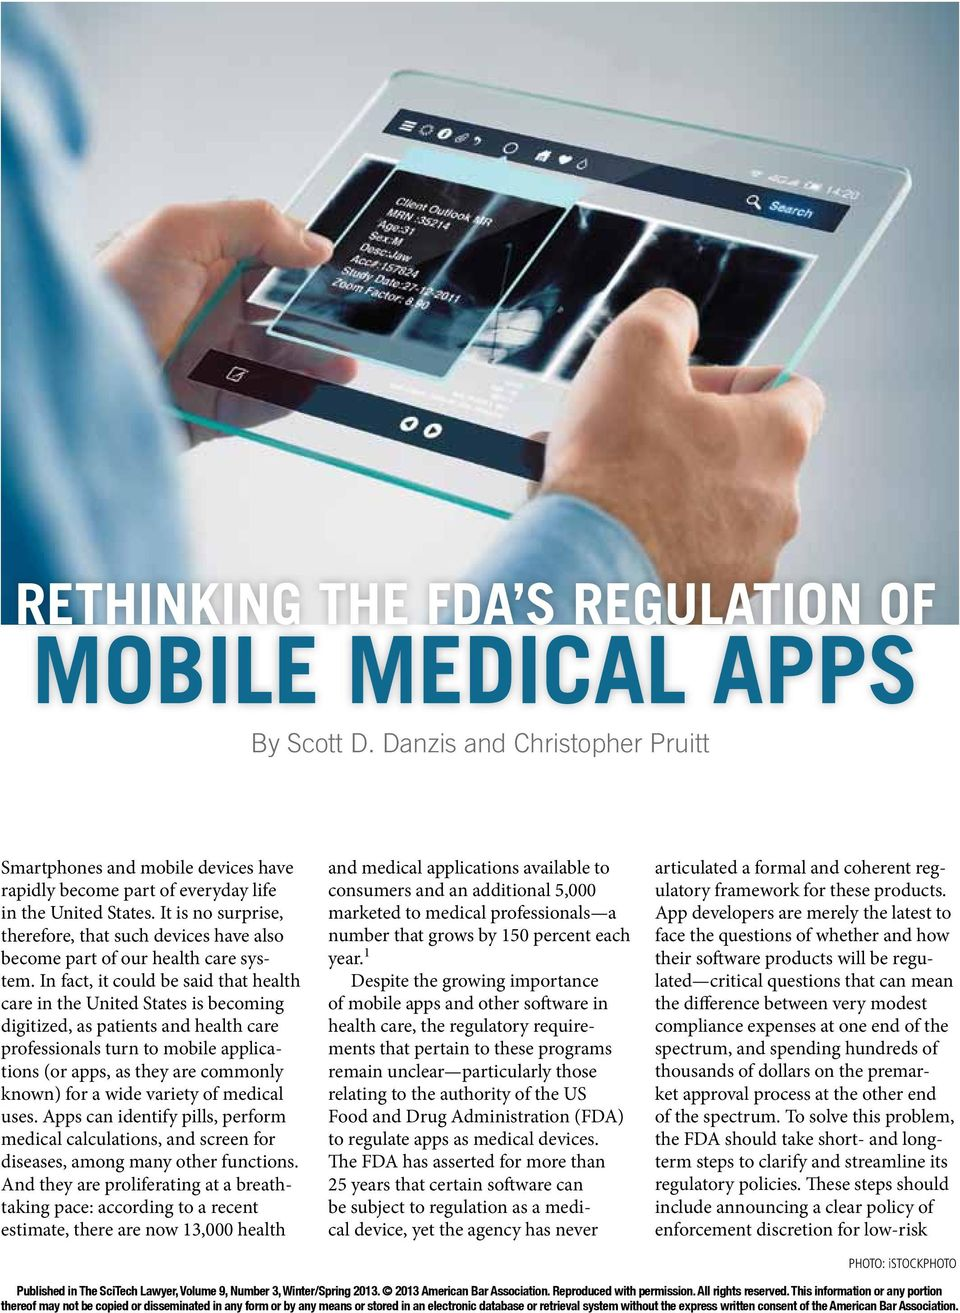 In fact, it could be said that health care in the United States is becoming digitized, as patients and health care professionals turn to mobile applications (or apps, as they are commonly known) for